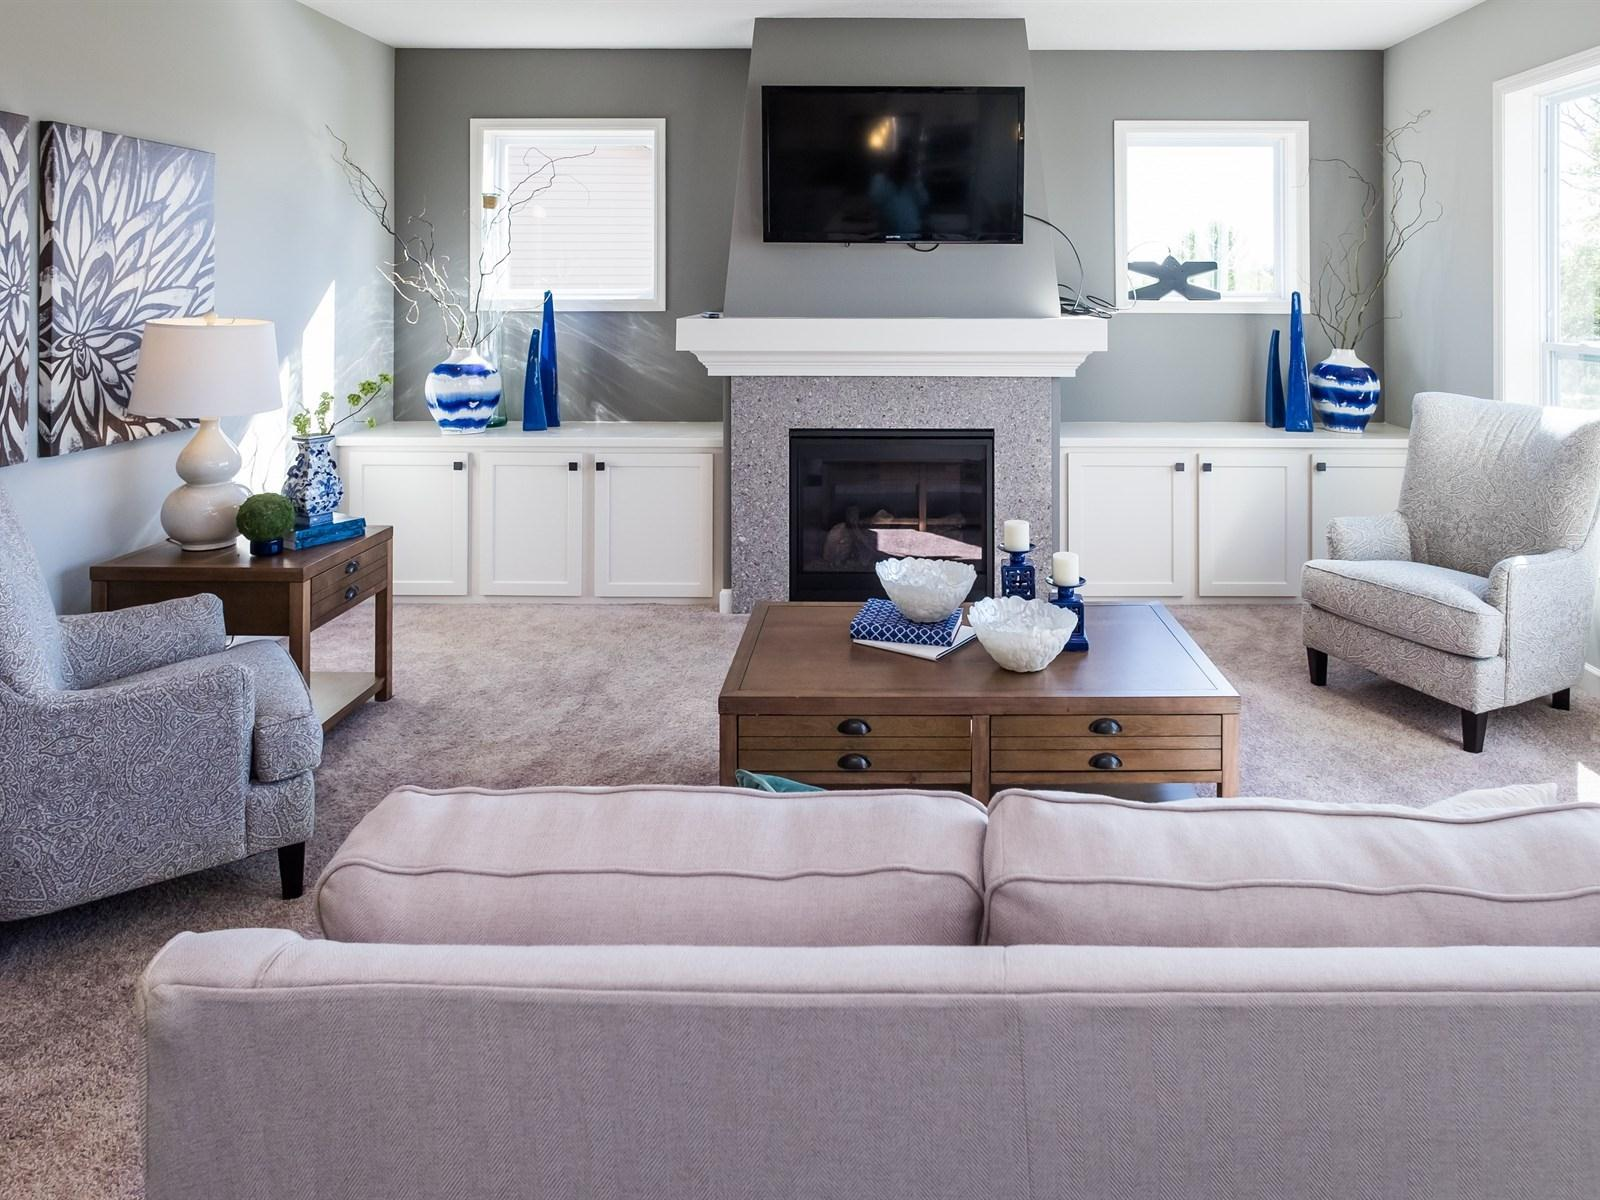 Living Area featured in The Eastridge  By Brandl Anderson in Minneapolis-St. Paul, MN